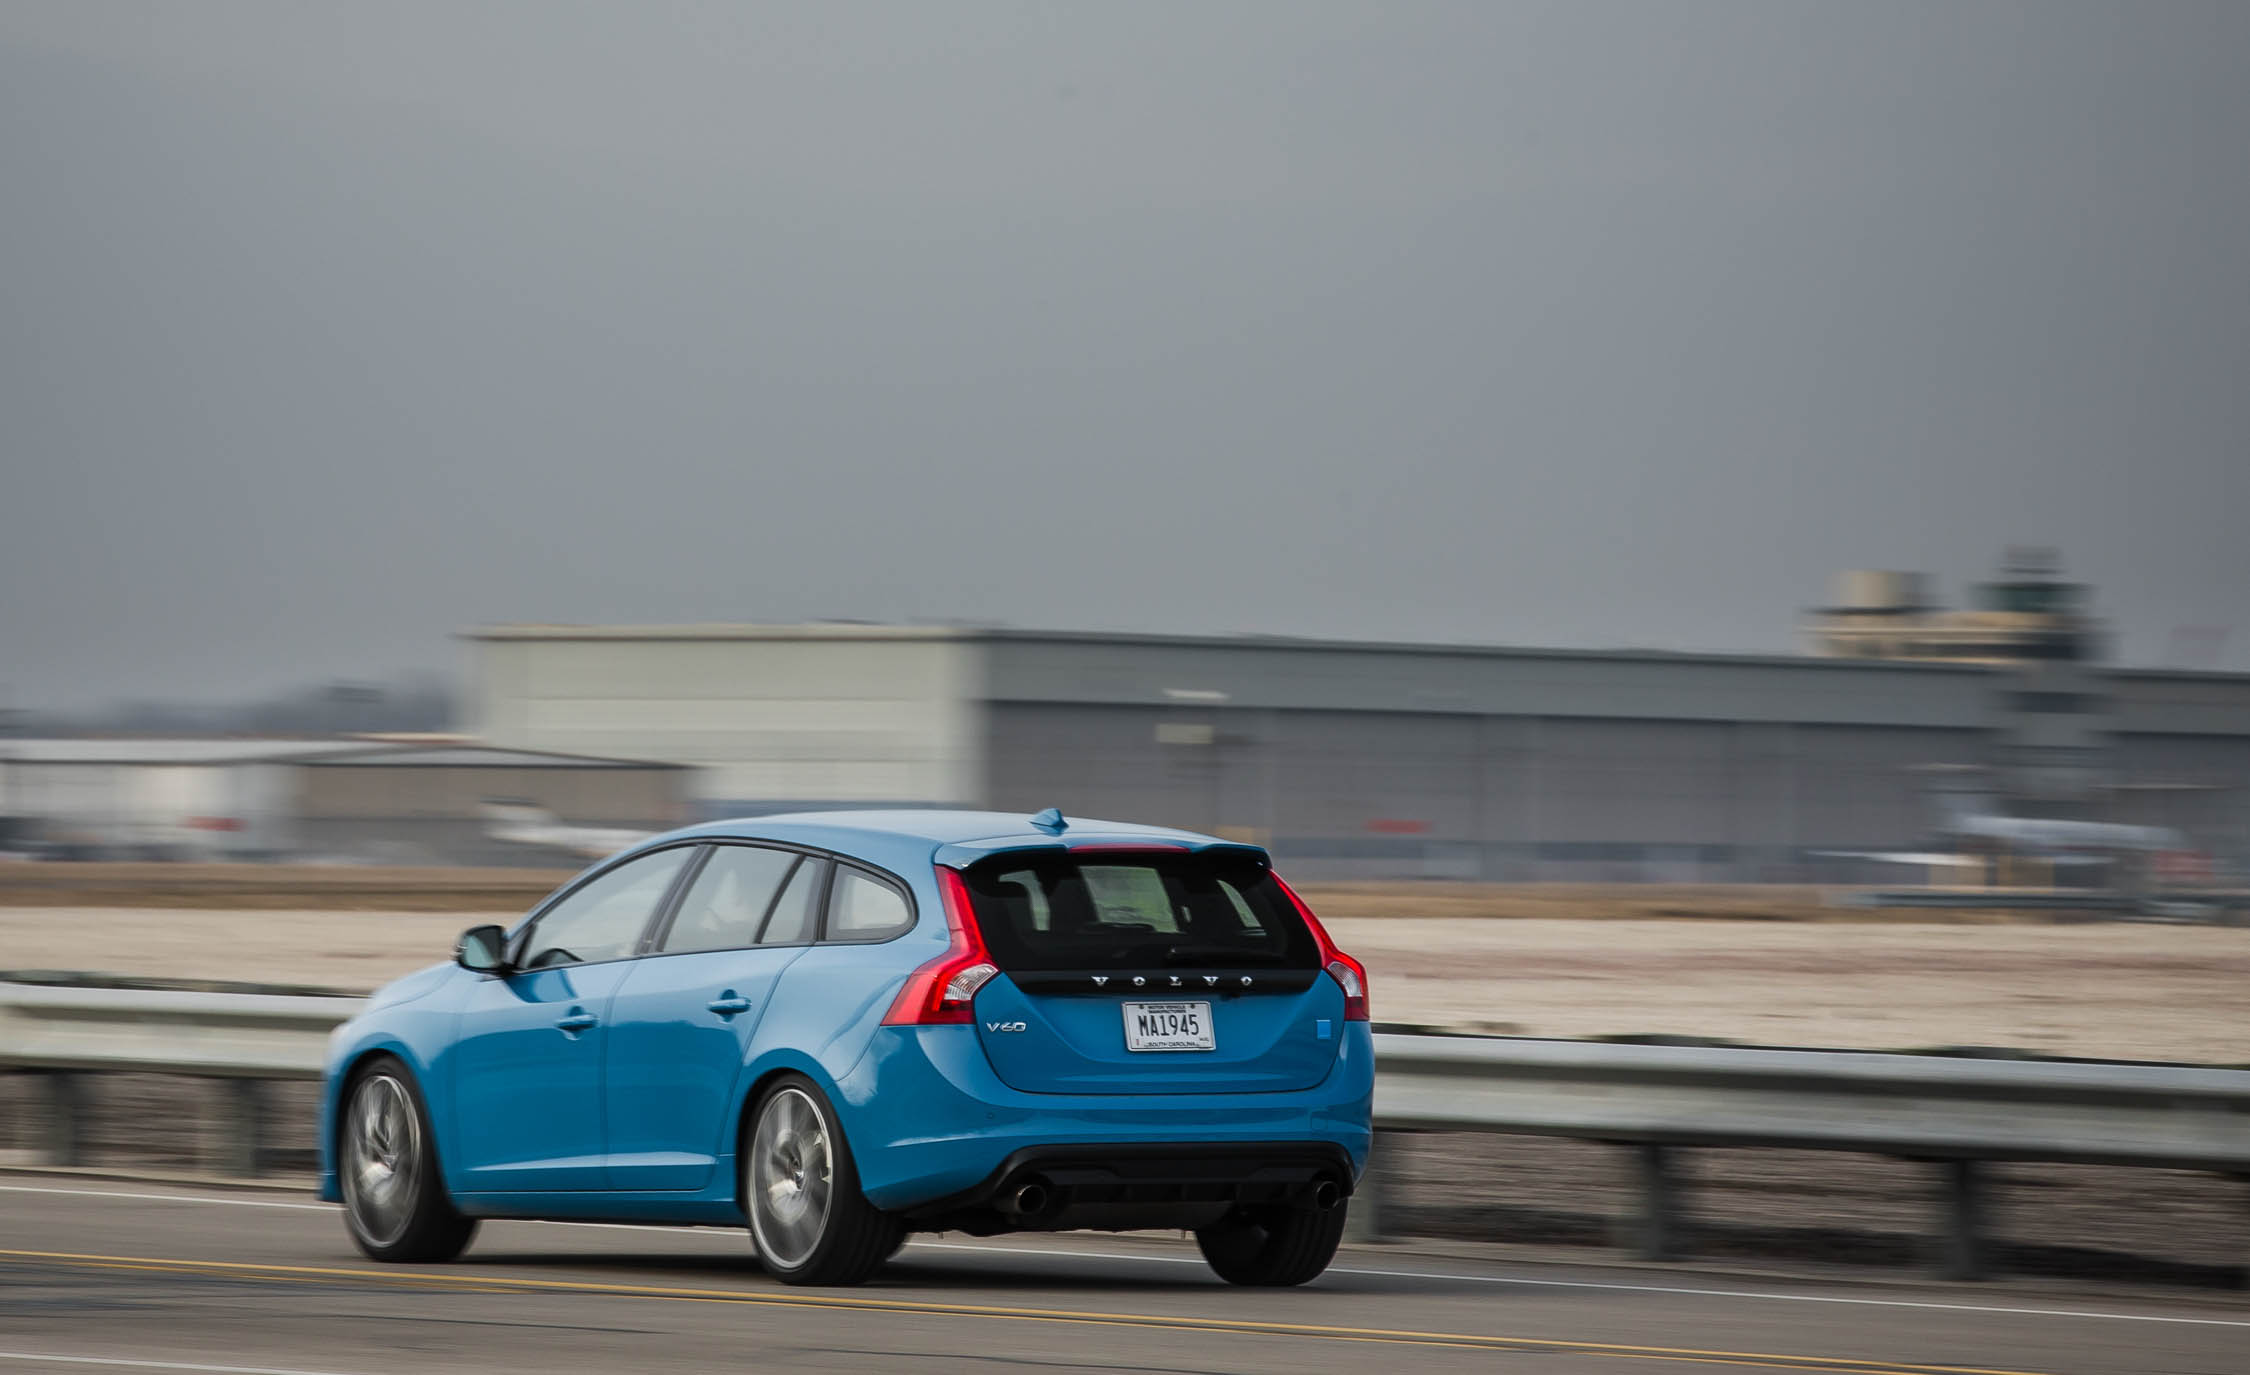 2017 Volvo V60 Polestar Test Drive Rear And Side Preview (Photo 11 of 53)